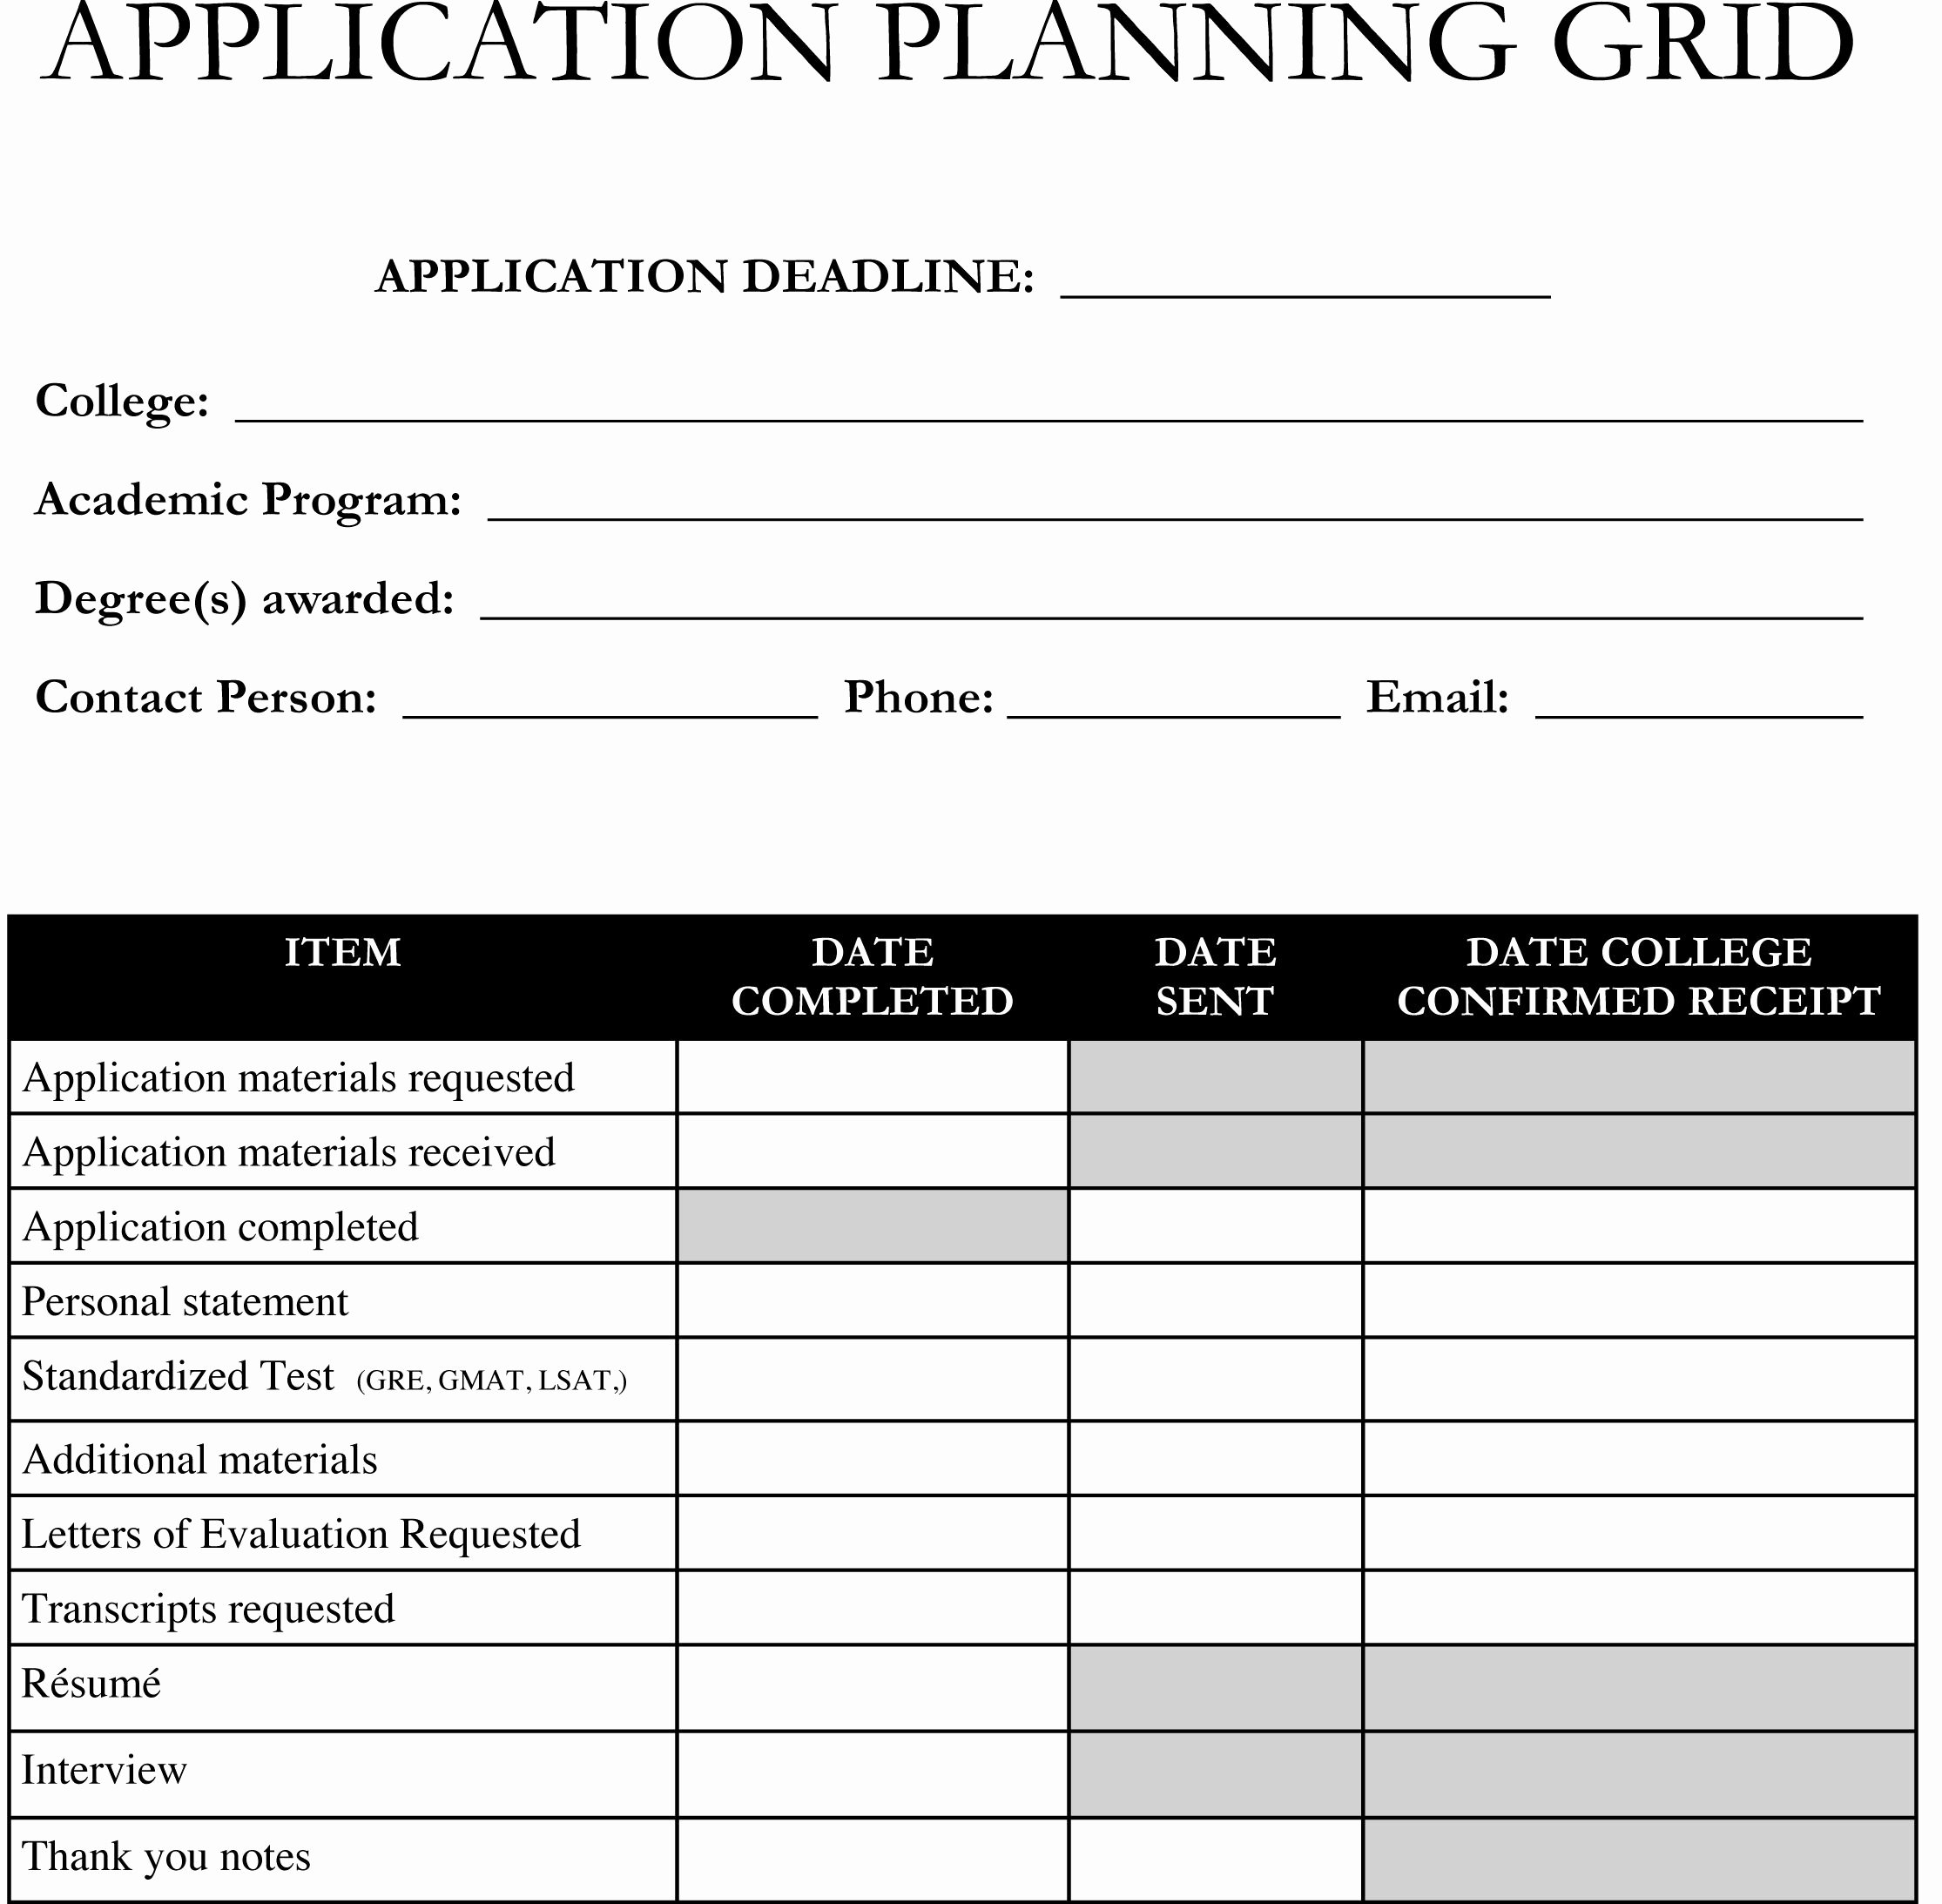 College Application Checklist Template Elegant Planning On Applying to Graduate School Use This